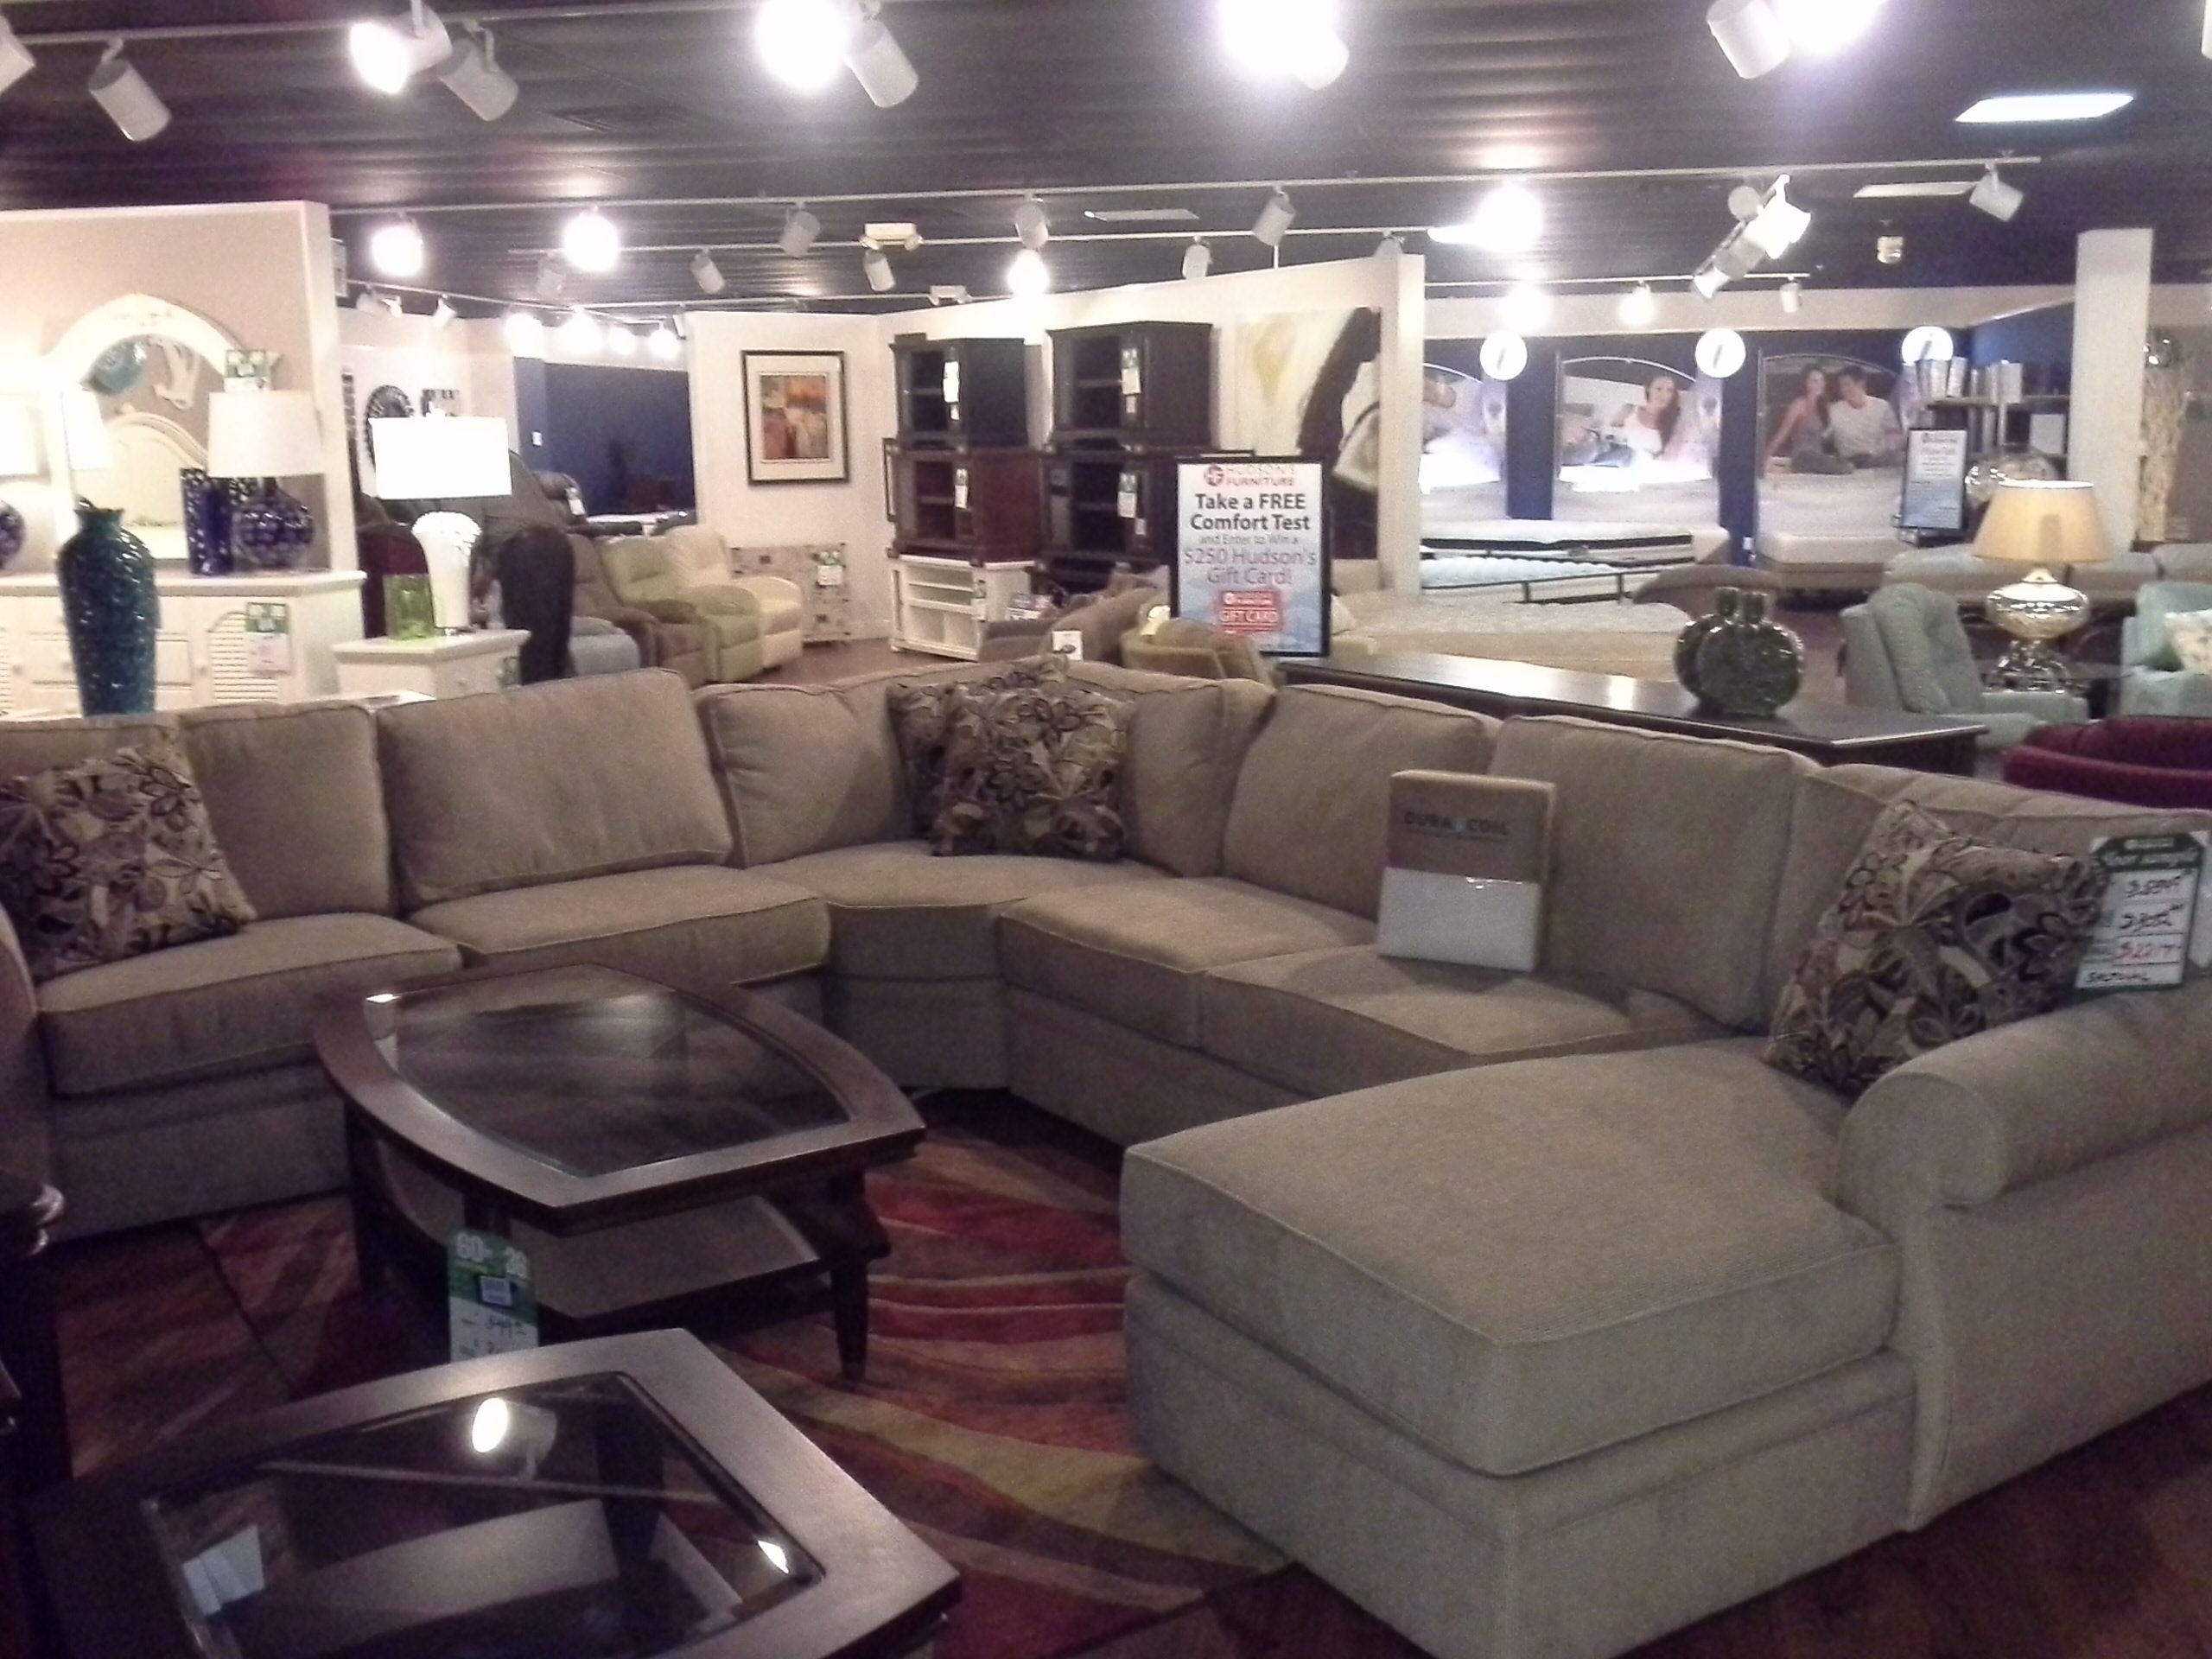 Broyhill Sectional | Home Decor | Pinterest | House Intended For Sectional Sofas At Broyhill (View 11 of 15)